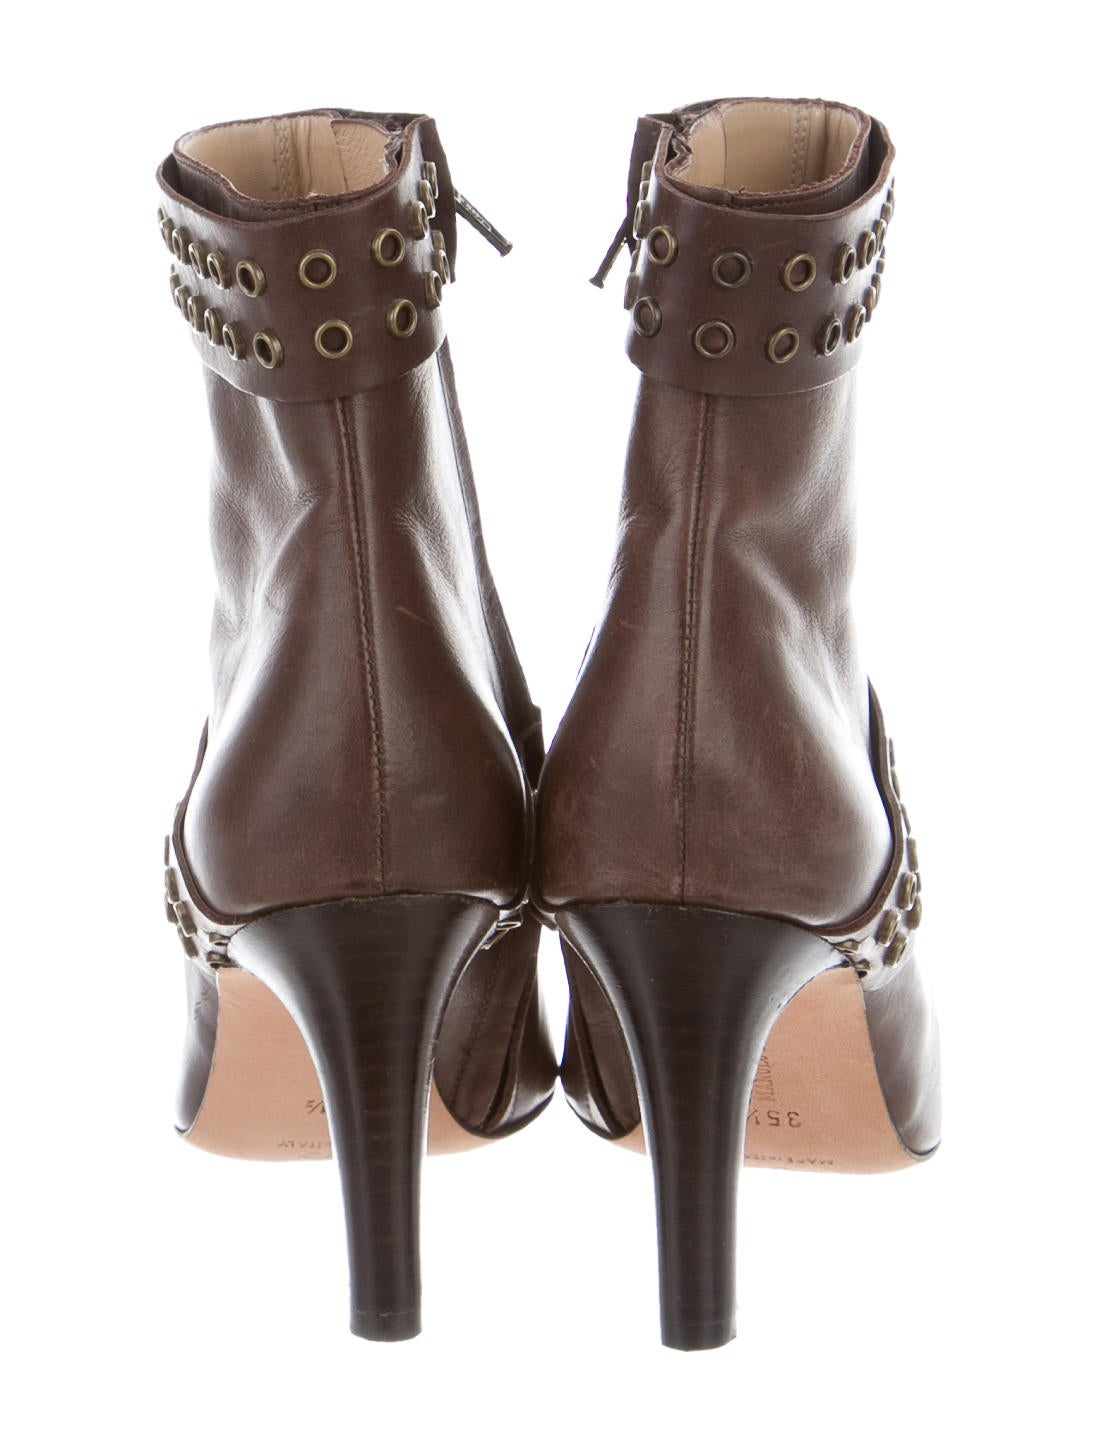 Manolo Blahnik Pointed Toe Ankle Booties Shoes